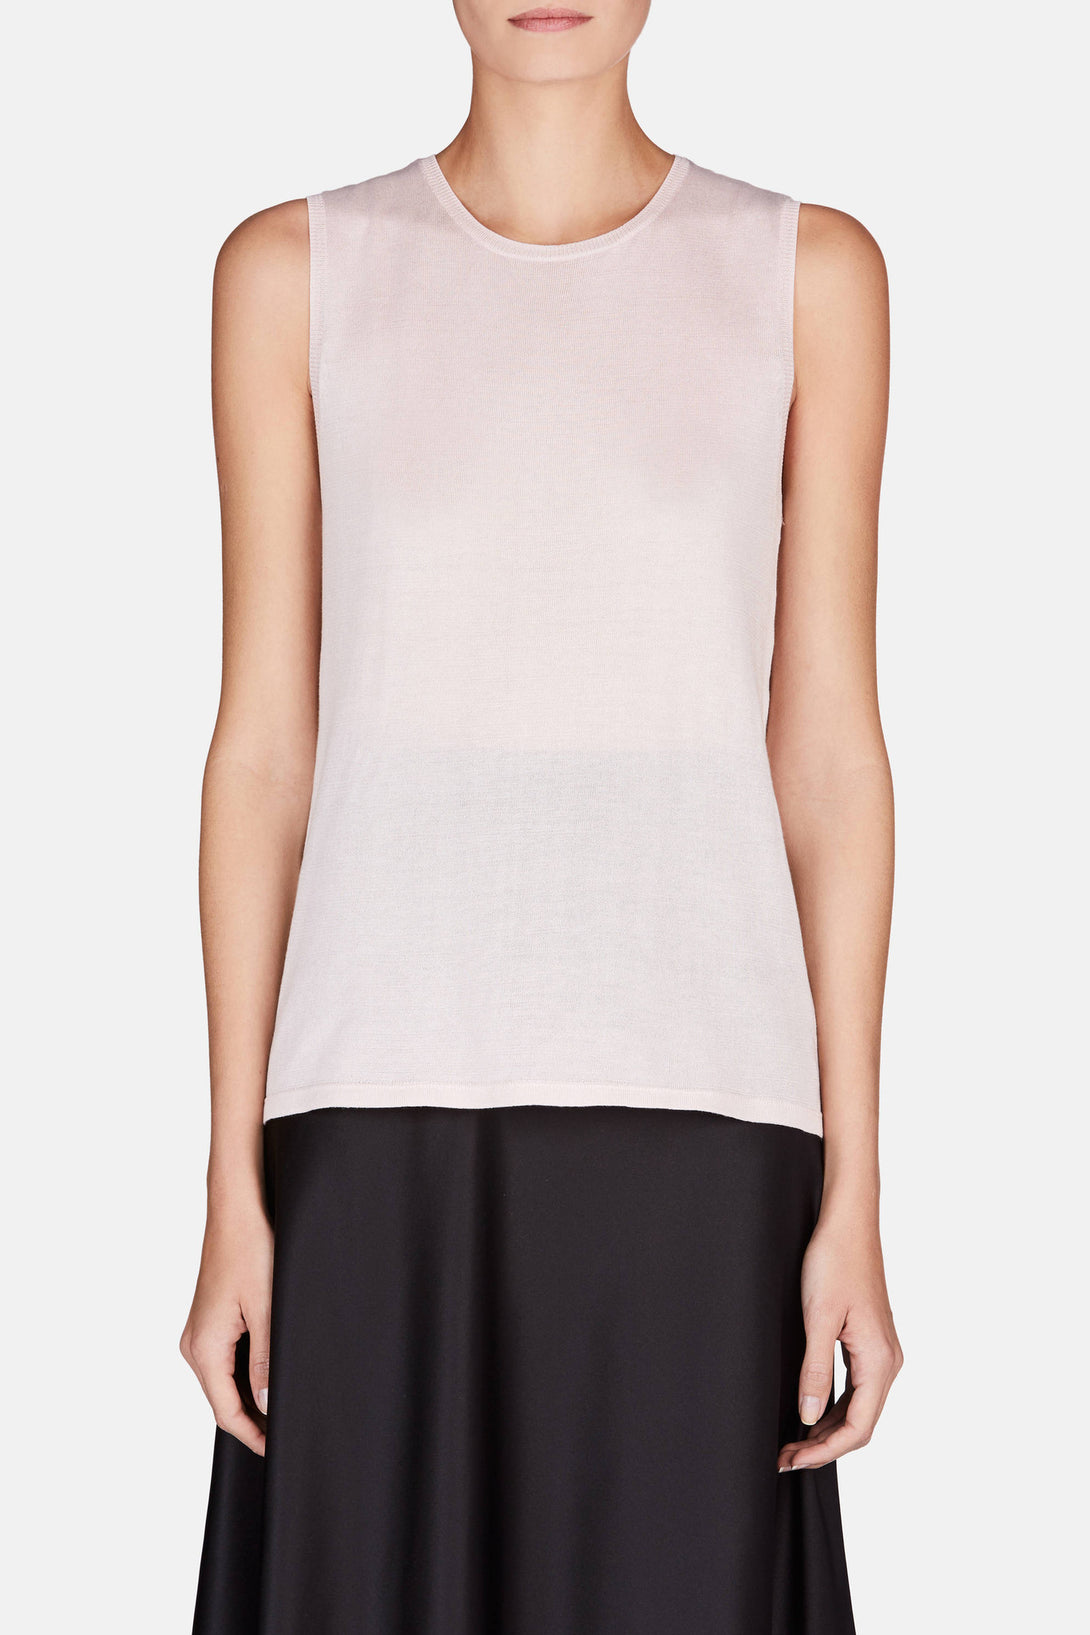 Muscle Tank - Pale Pink